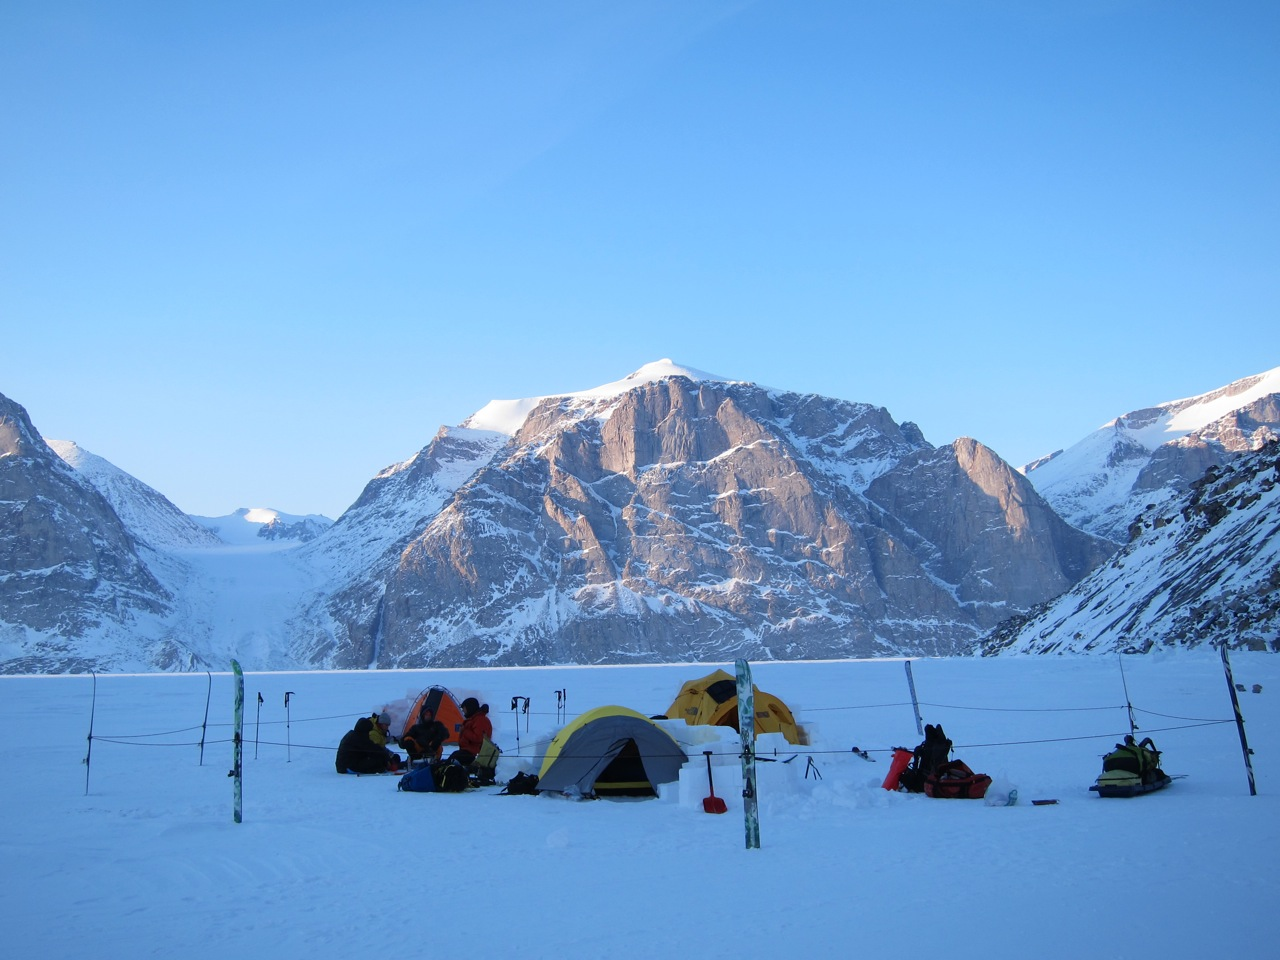 Skiing Baffin Island Part III – Final Video & Resources